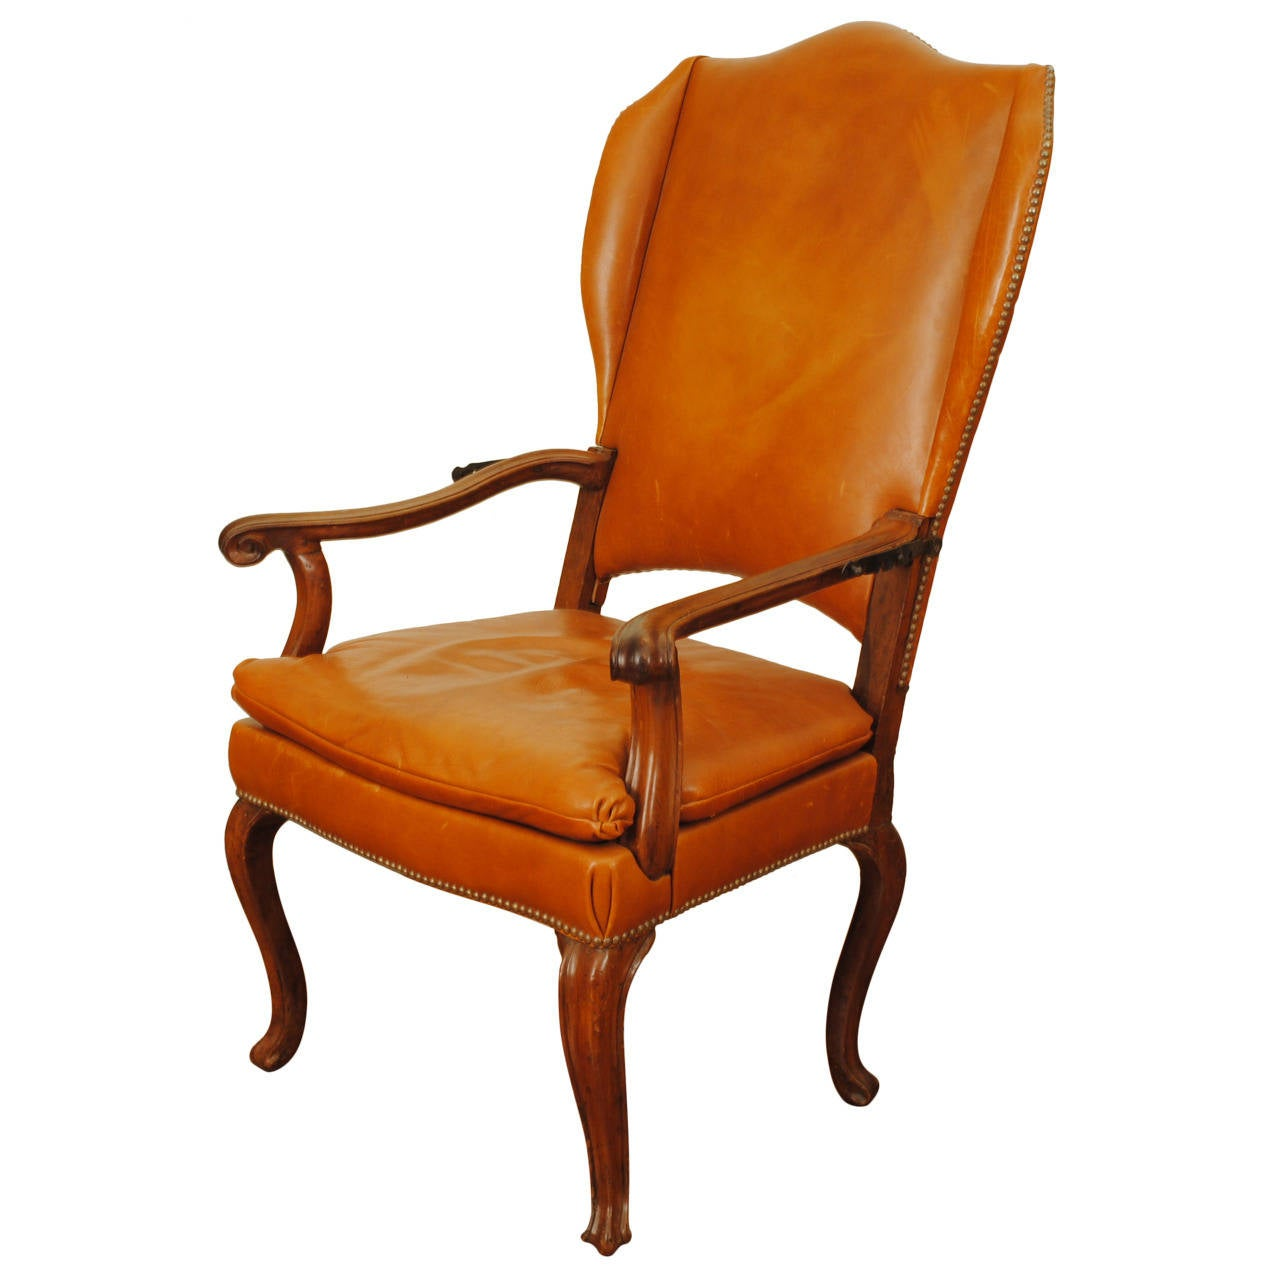 Italian Rococo Walnut and Leather Upholstered Reclining